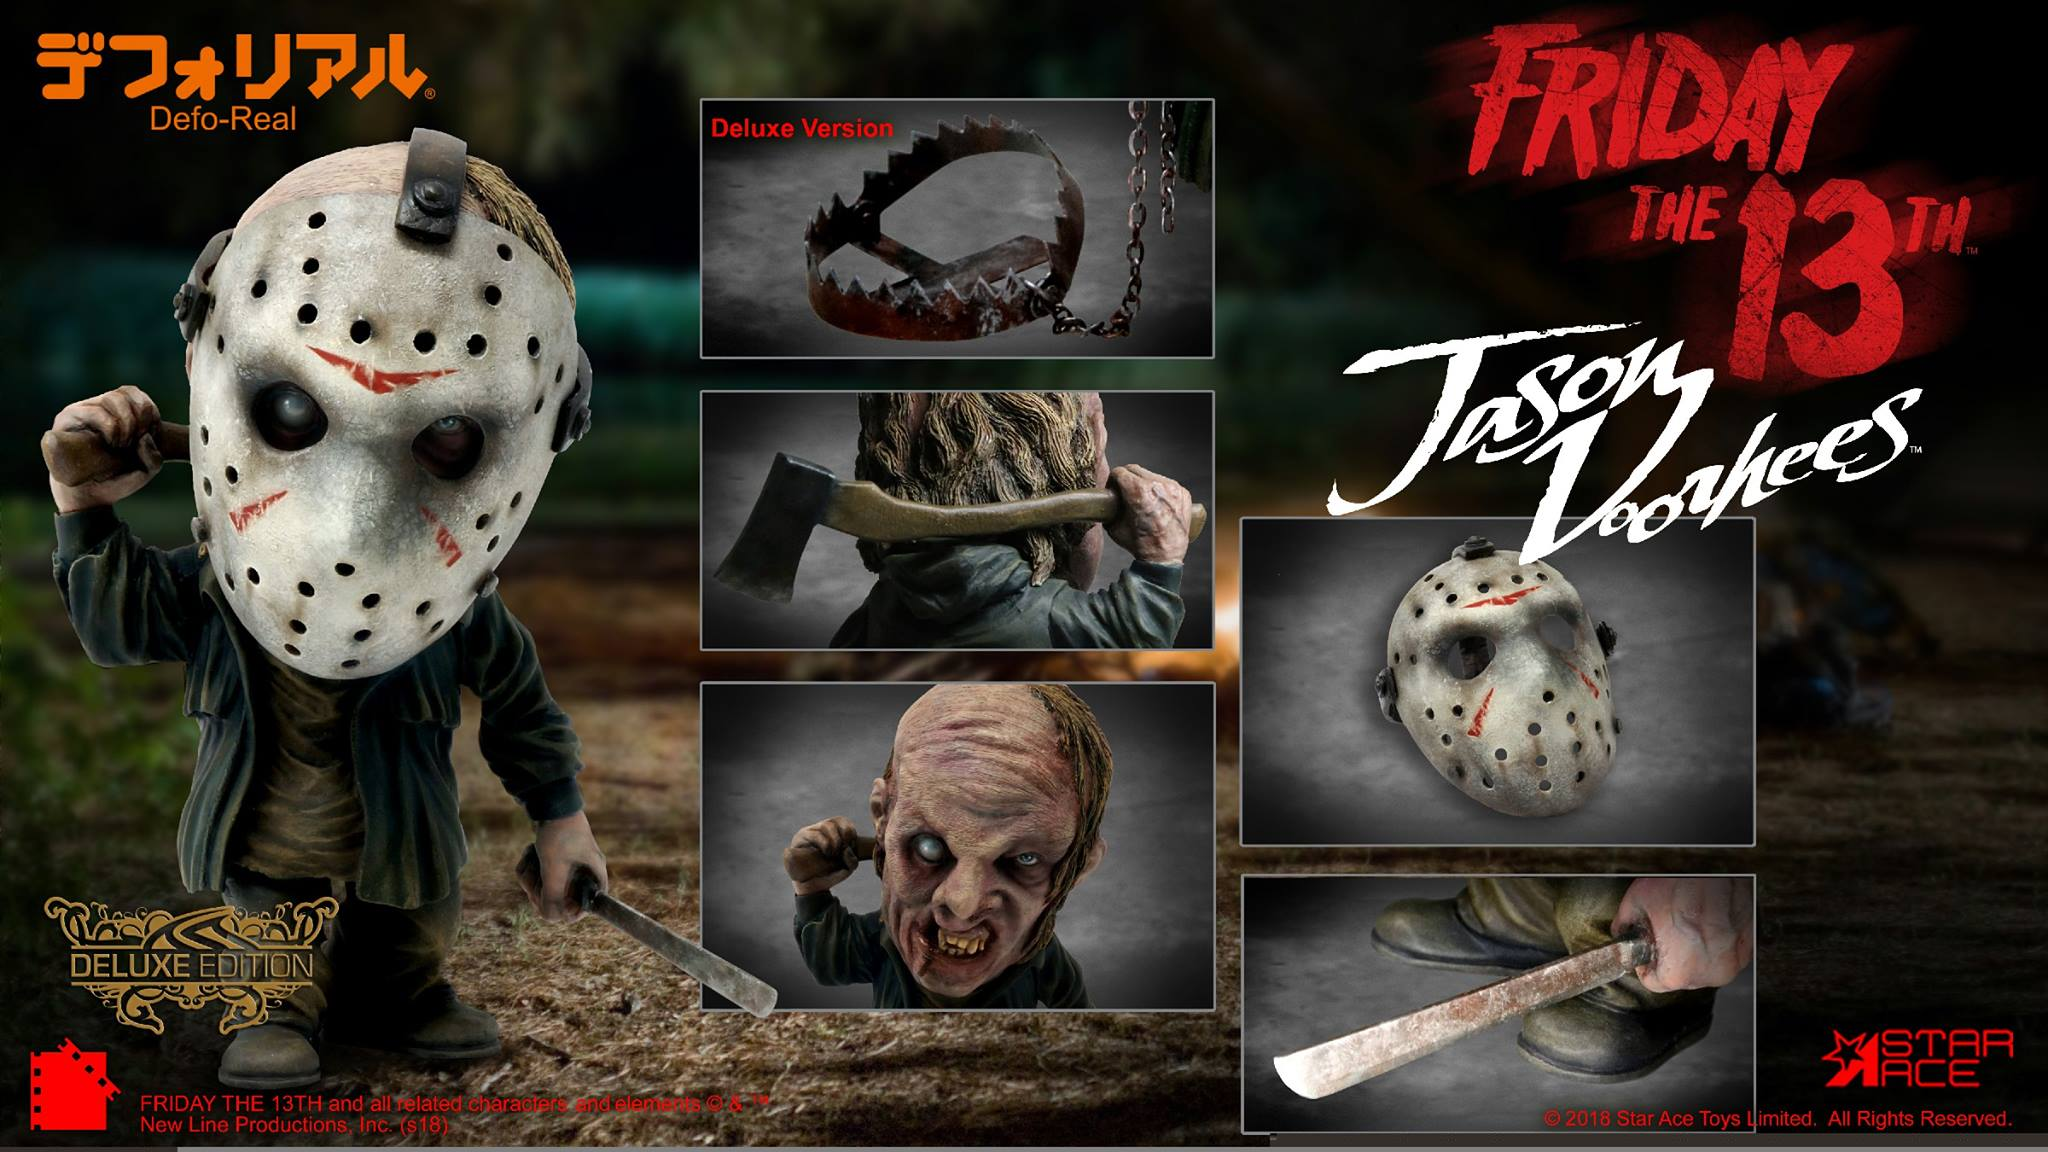 Star Ace Stylized Jason Voorhees Statue Toy Discussion At Circuit Breaker By Bad Moon Toyarkcom Friday The 13th 2009 Defo Real Toys